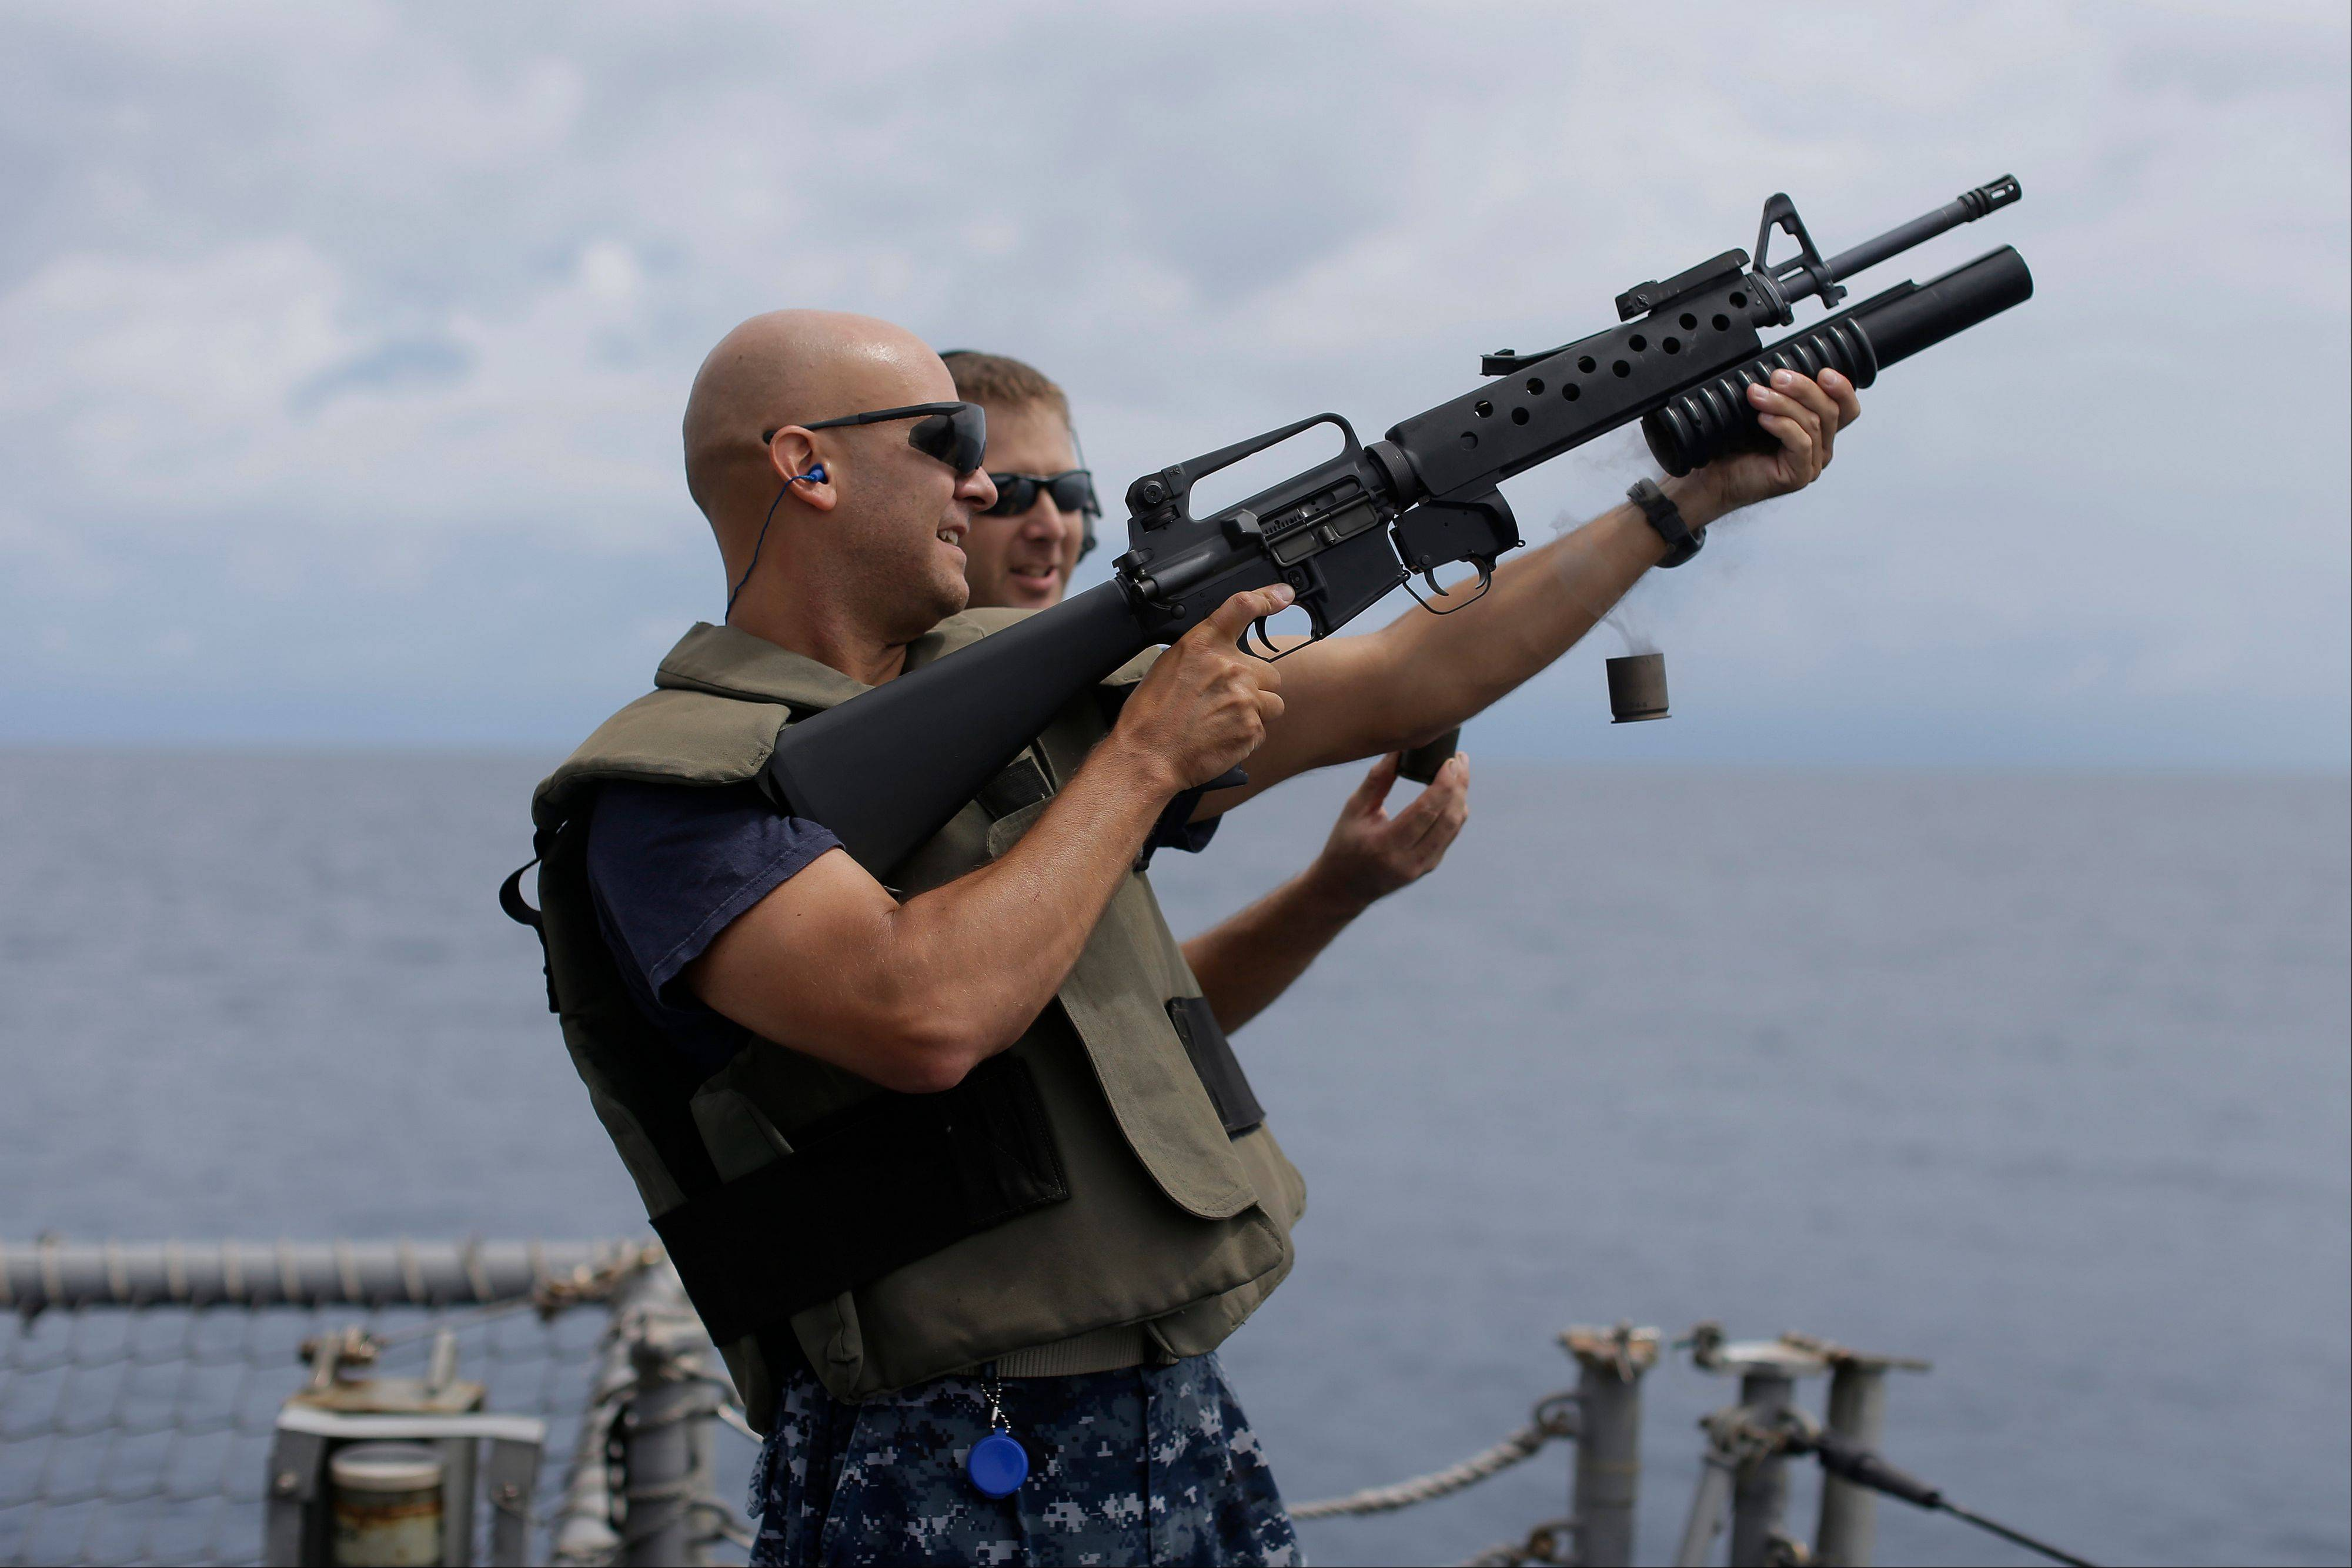 The captain of the USS Underwood, Peter T. Mirisola, fires a grenade launcher during small arms qualifications onboard the ship while patrolling in international waters near Panama. In the most expensive initiative in Latin America since the Cold War, the U.S. has militarized the battle against drug traffickers, spending more than $20 billion in the past decade. U.S. Army troops, Air Force pilots and Navy ships outfitted with Coast Gua